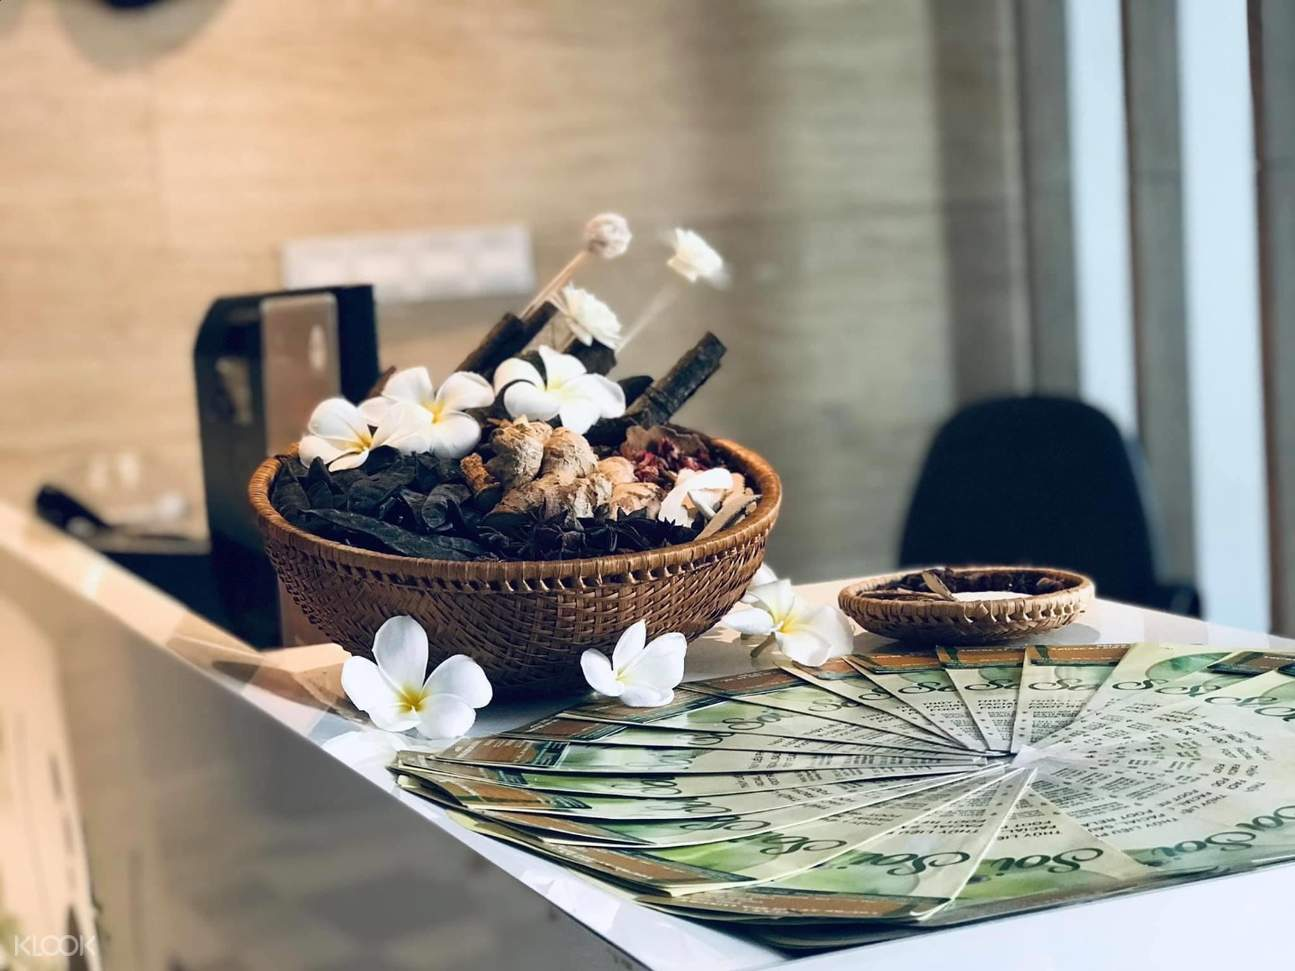 Treat yourself and your loved ones to the ultimate pampering experience in the heart of Saigon at Soi Spa